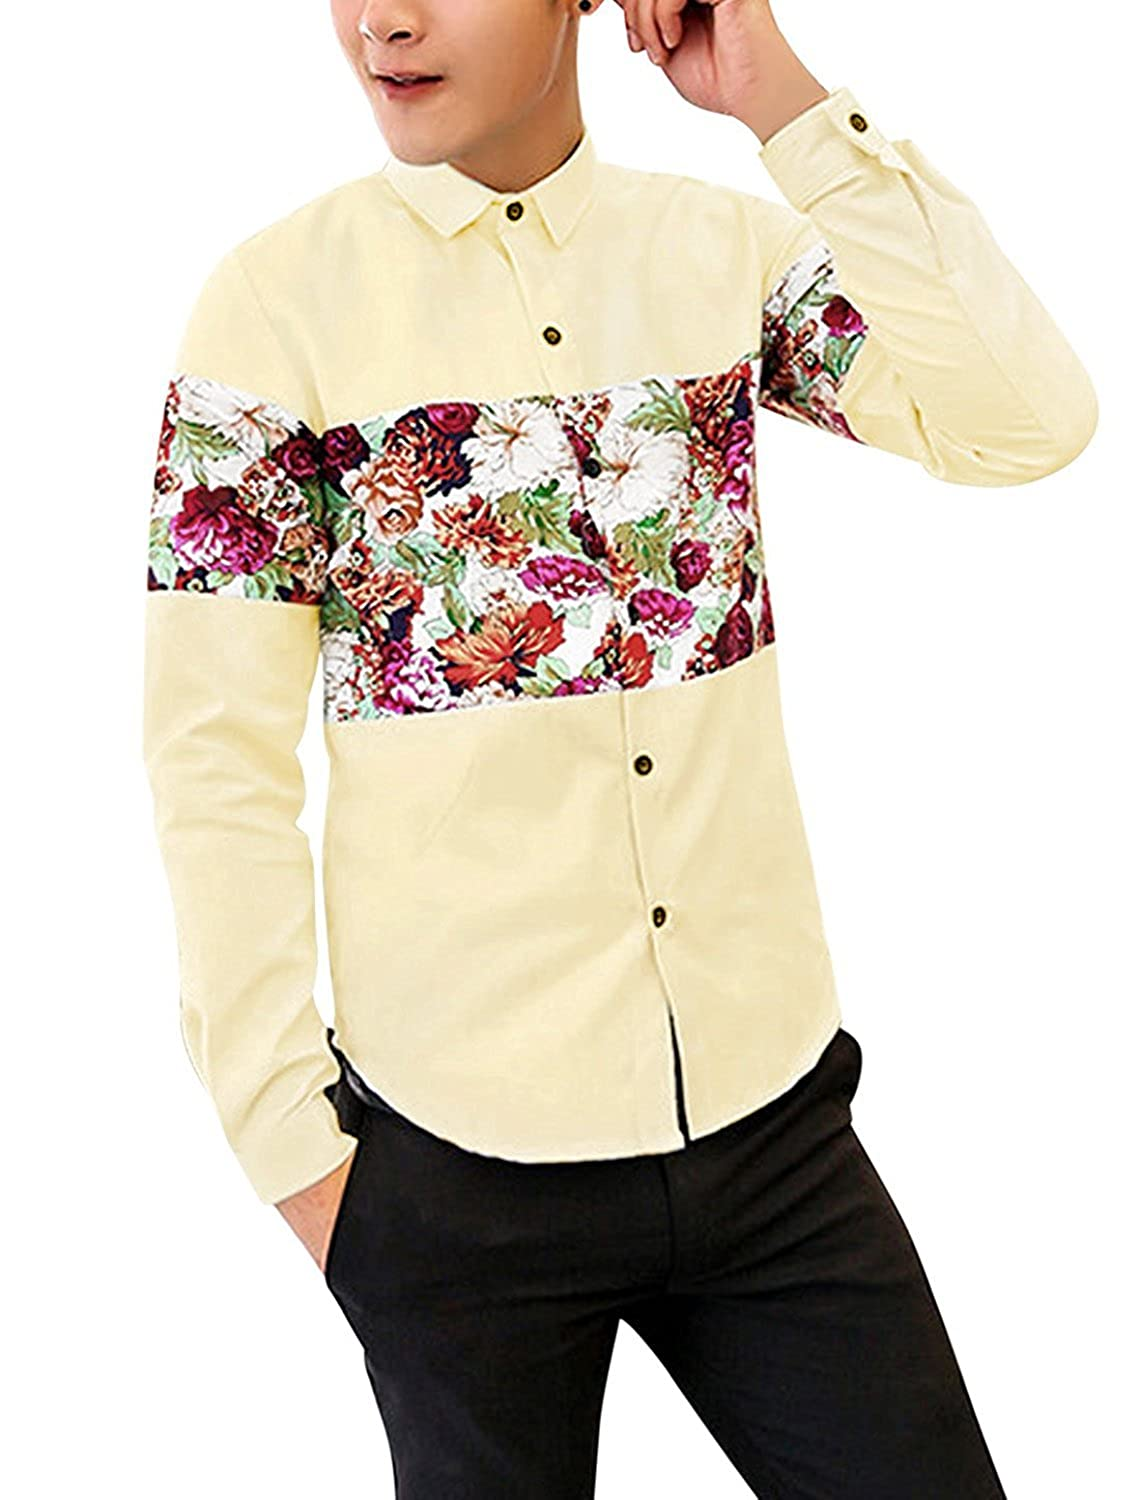 uxcell Men Point Collar Long Sleeves Panel Casual Shirt Yellow M a15052500ux0528